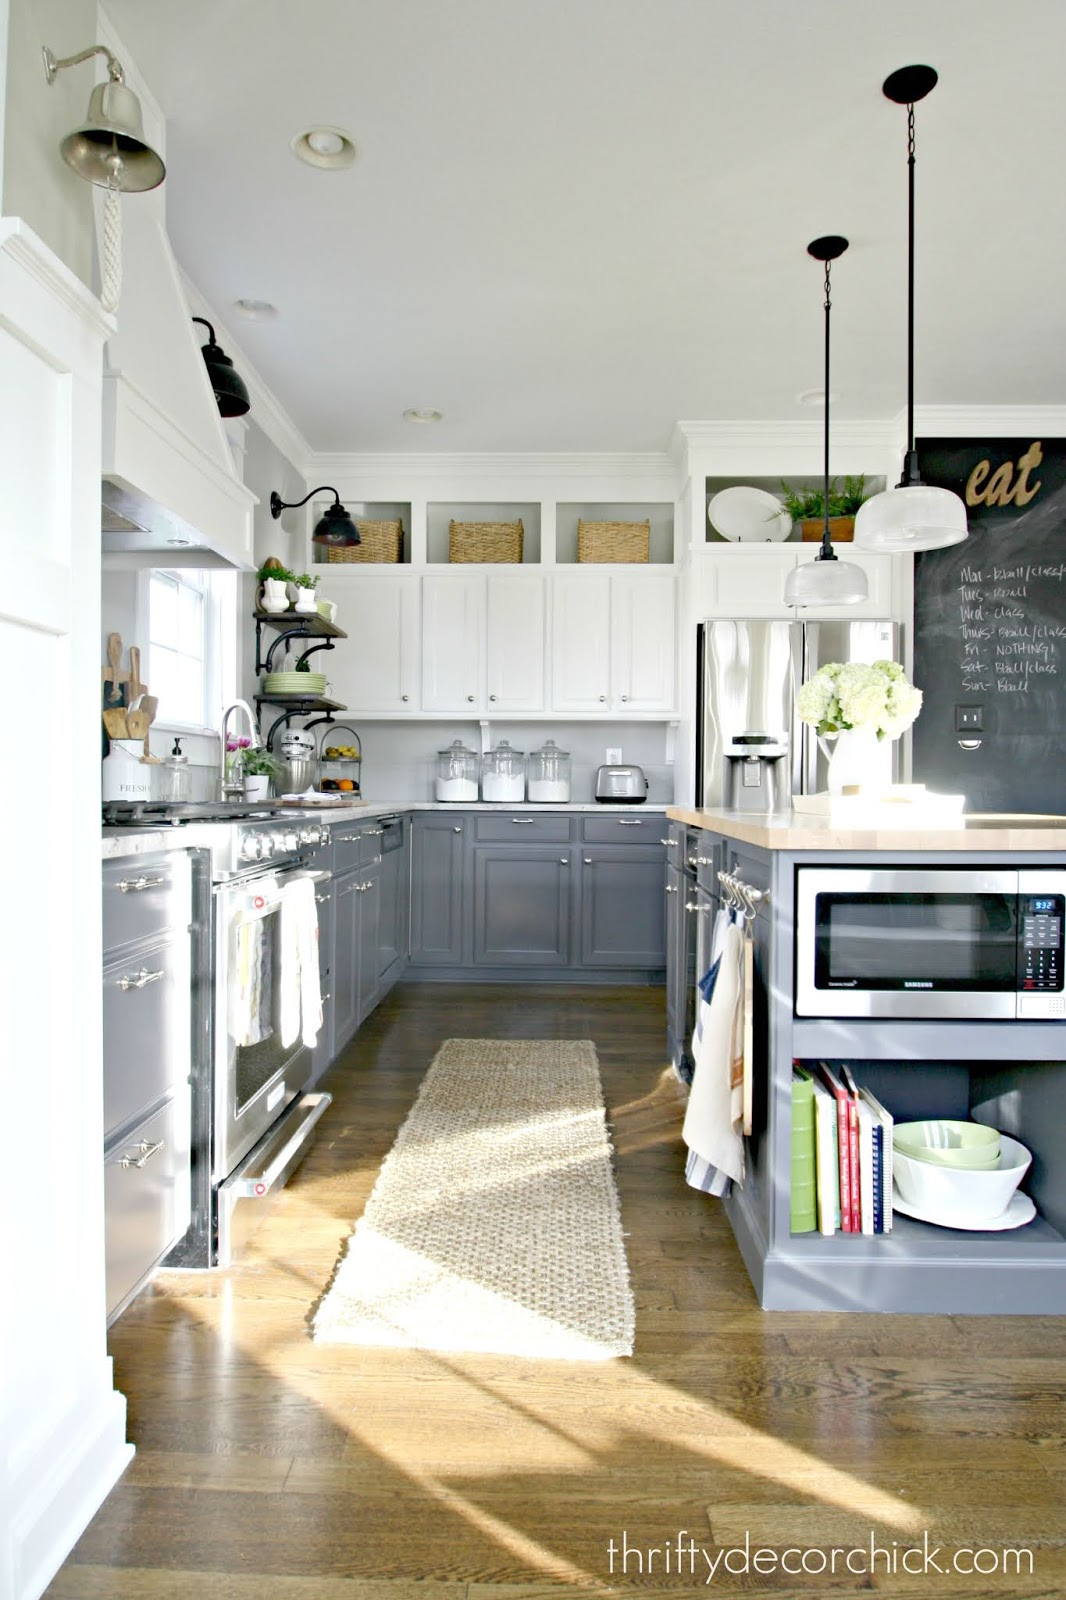 HUGE kitchen redo with gray and white cabinets